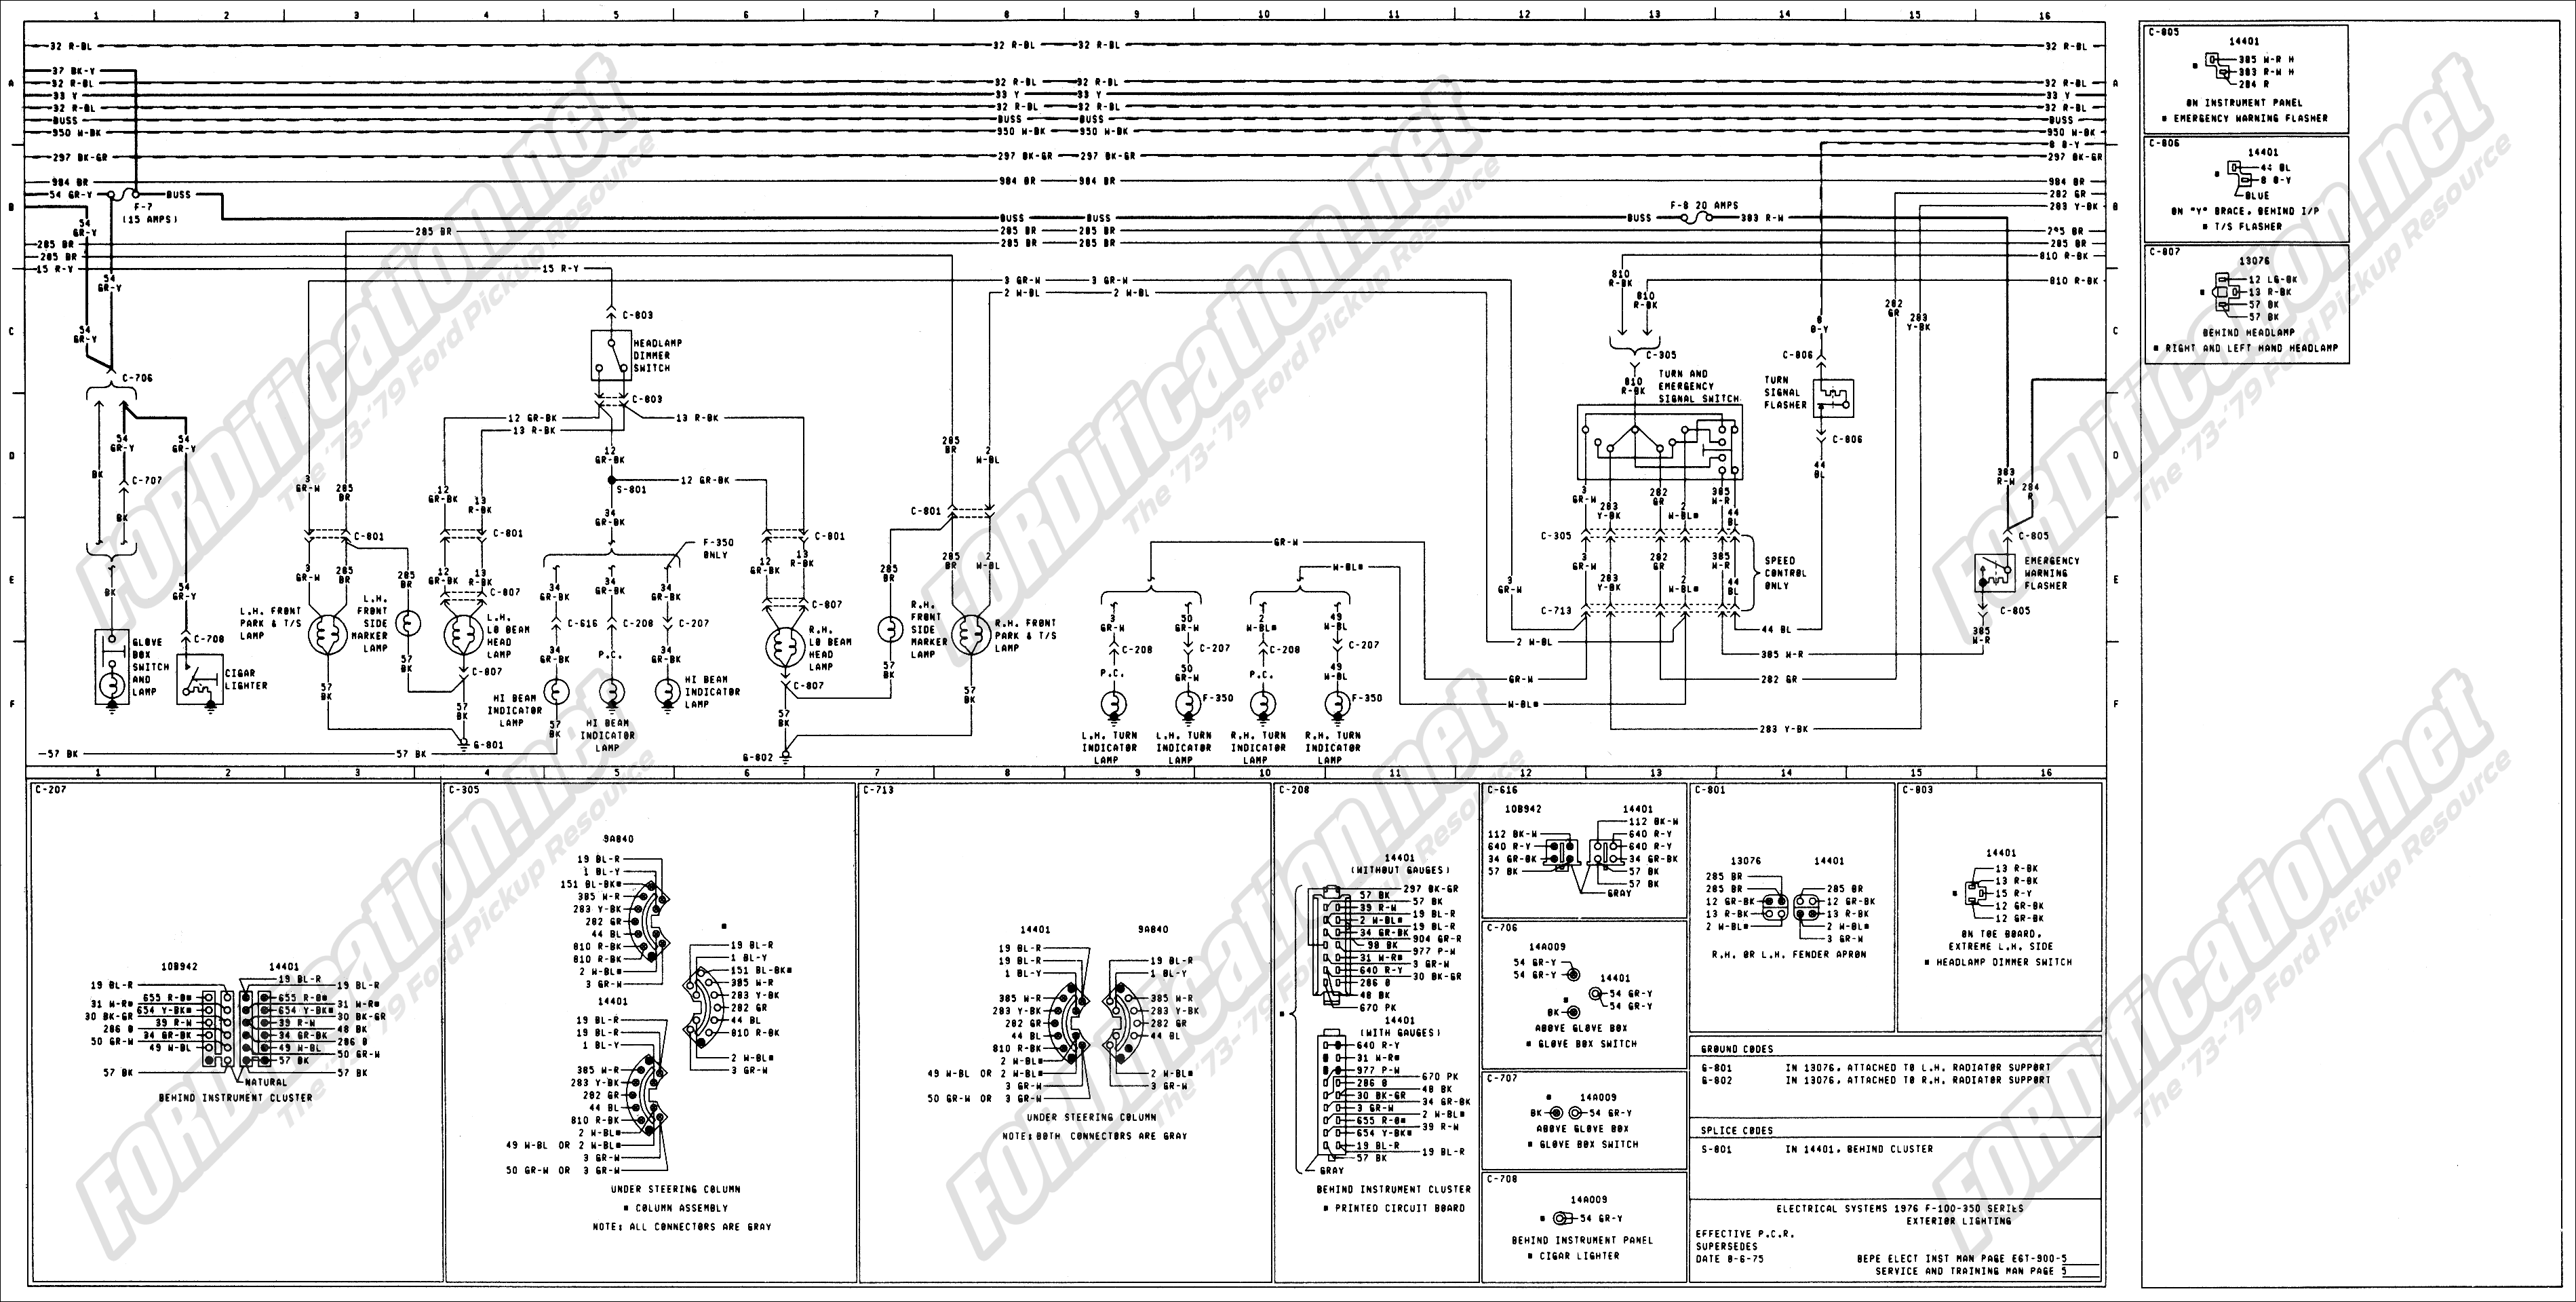 2002 Ford Powerstroke Wiring Diagram Worksheet And Ignition 7 3 1978 F250 Detailed Schematics Rh Lelandlutheran Com F 350 73 Injector Harness